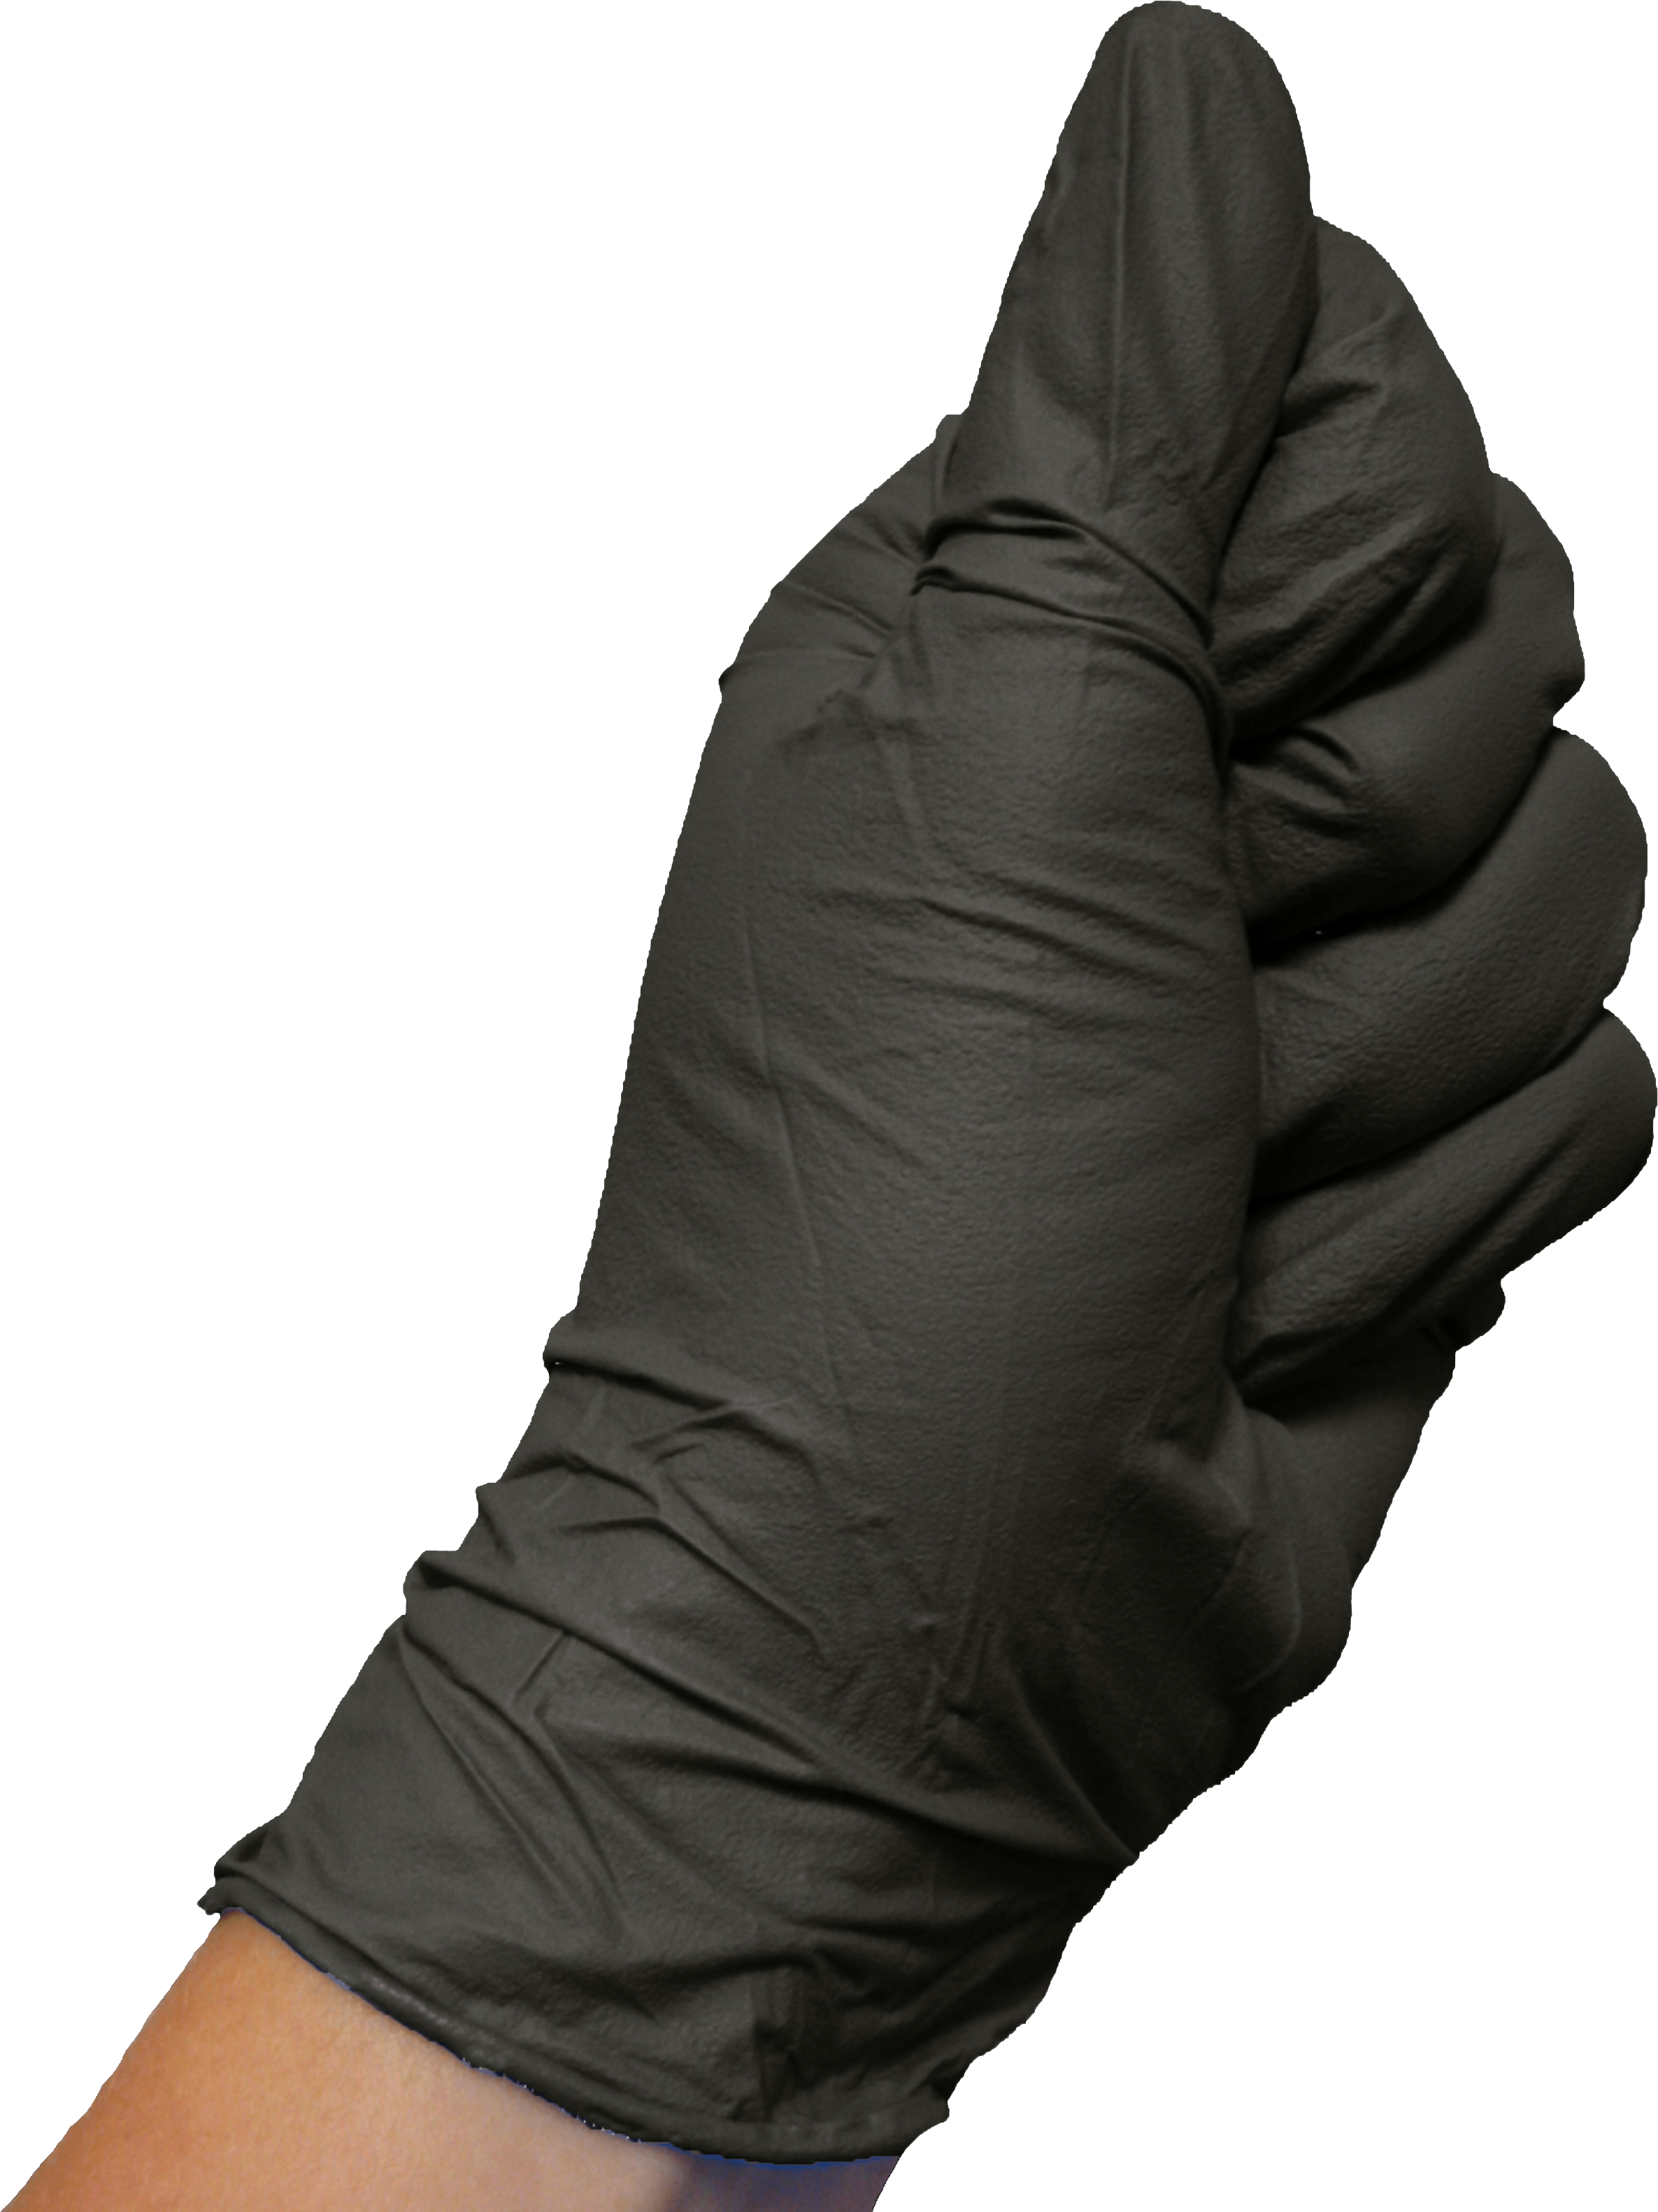 Glove On Hand Png Image PNG Image